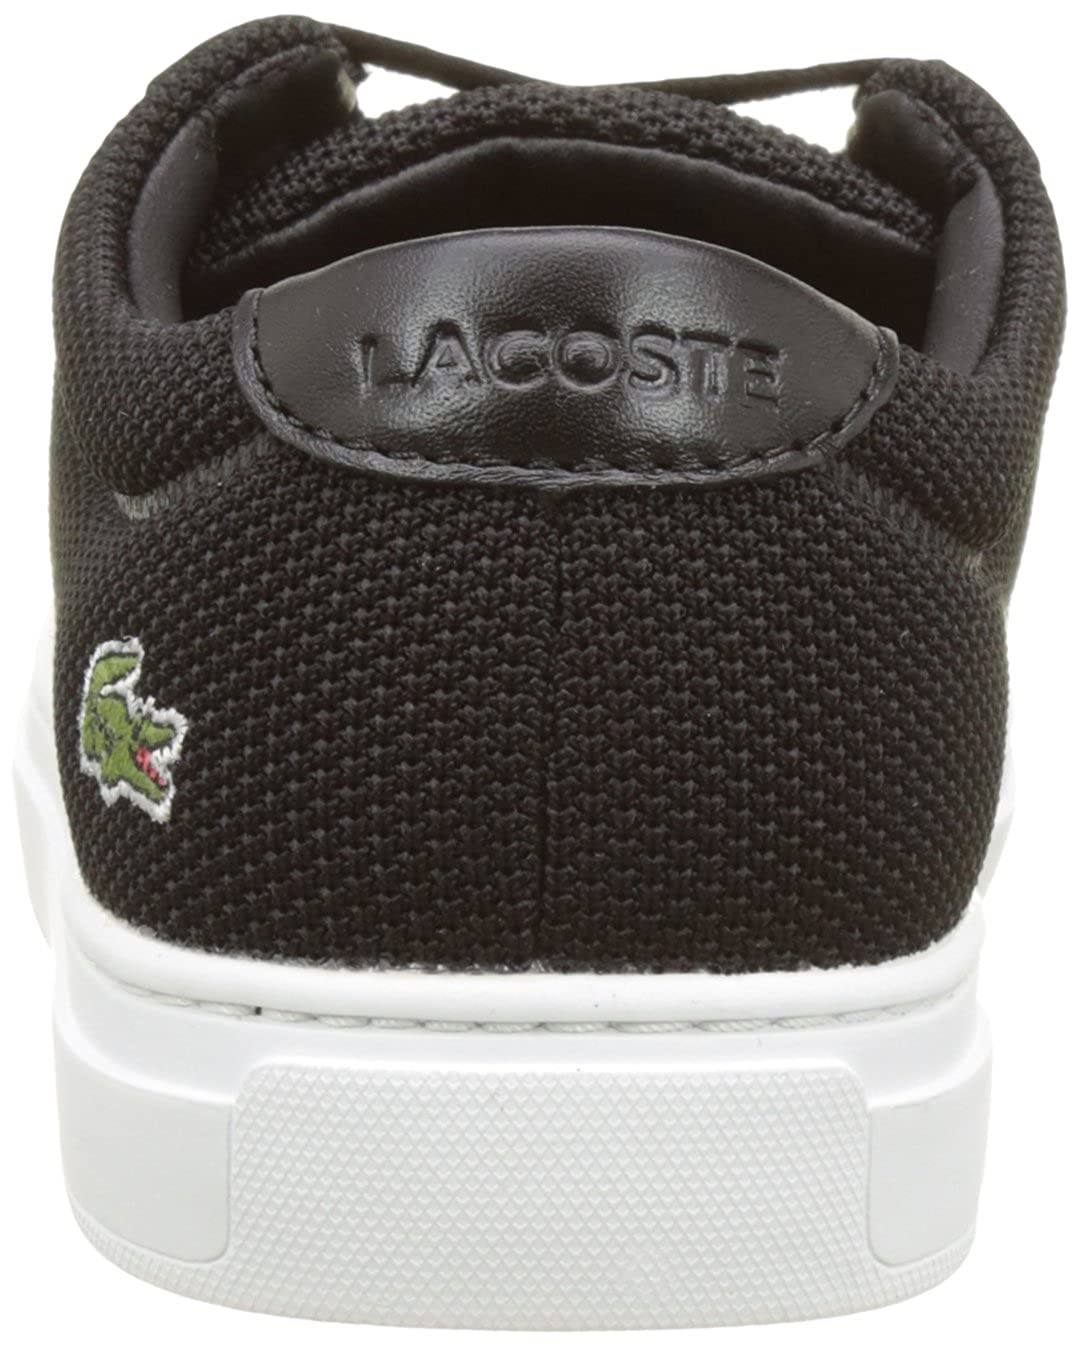 3b305ac16 Lacoste Women s L.12.12 Bl 2 Caw Low  Amazon.co.uk  Shoes   Bags